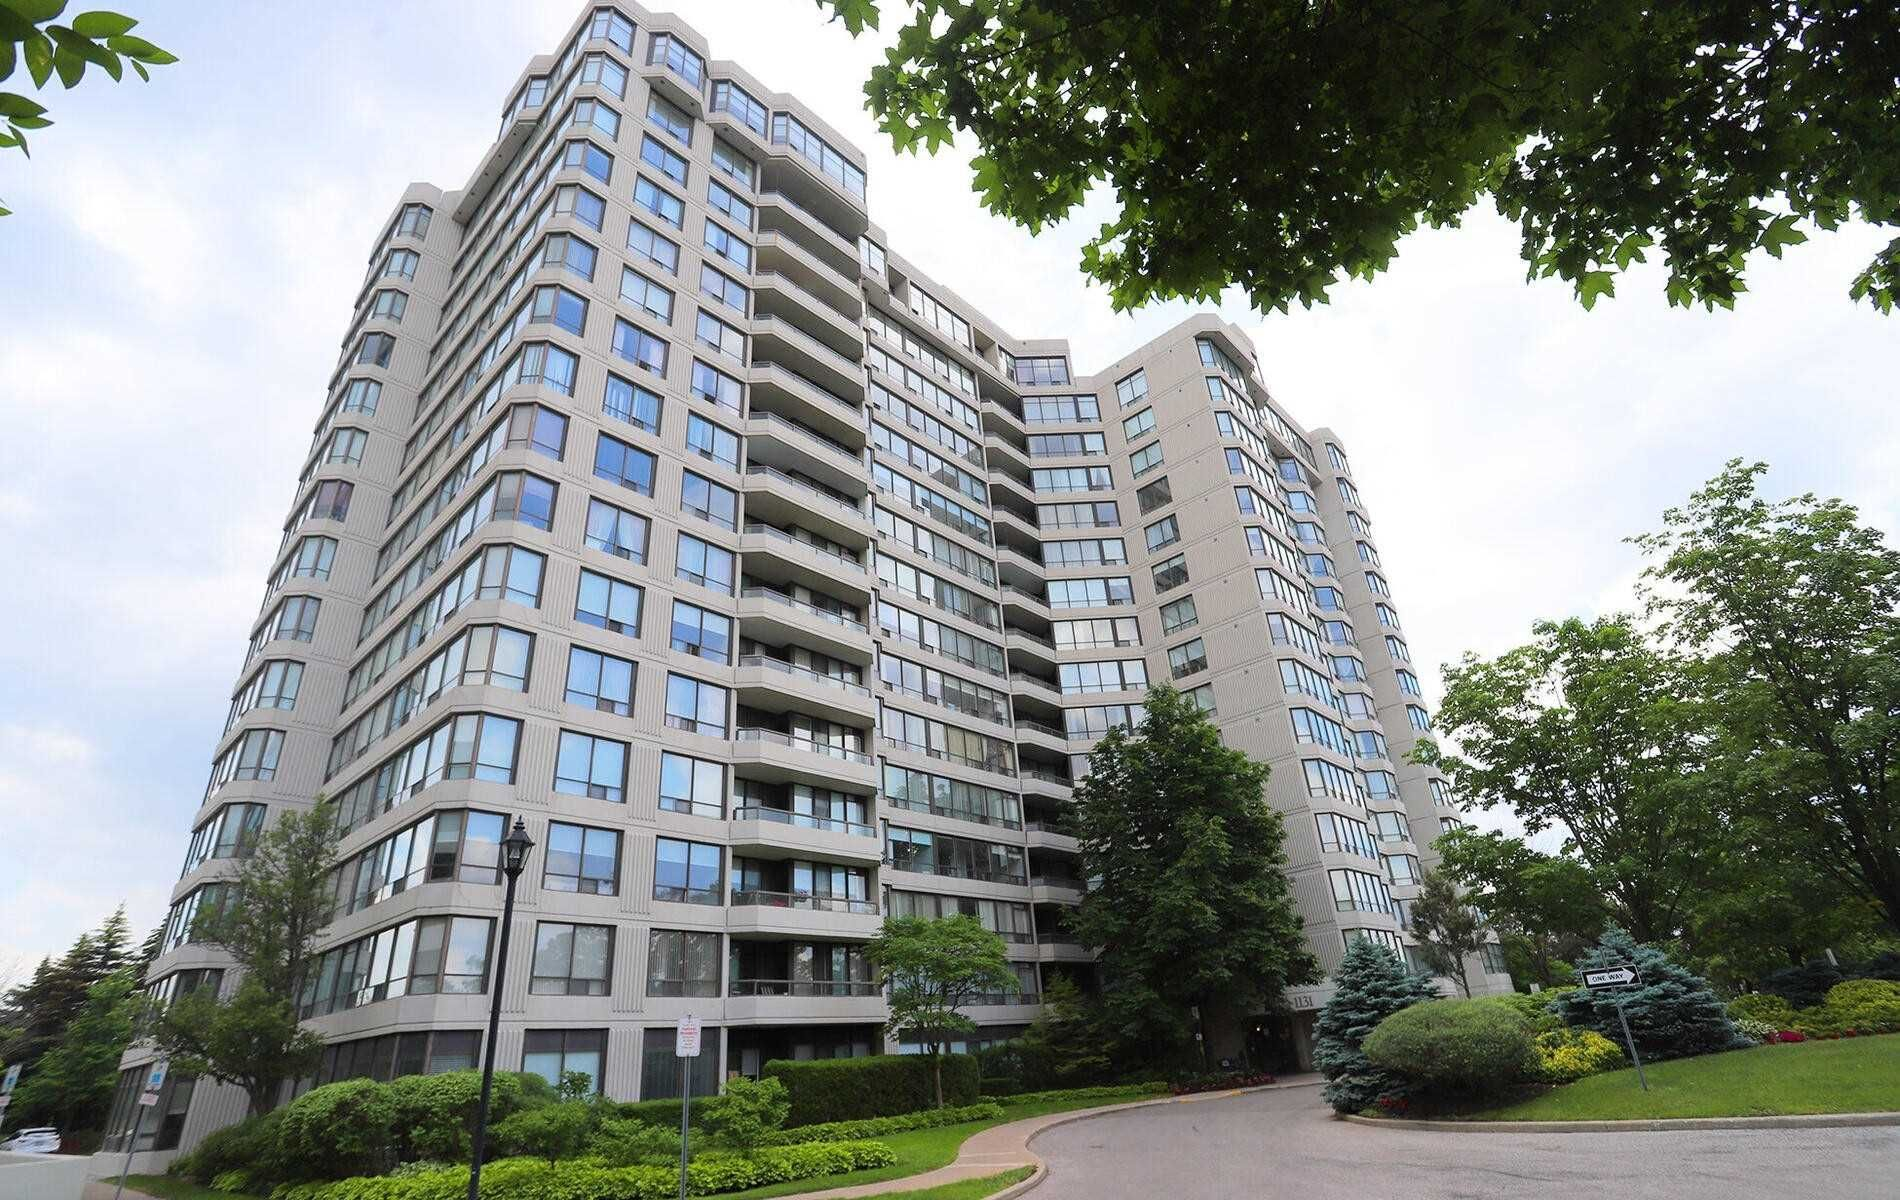 1131 Steeles Ave W, unit 1102 for sale in Toronto - image #1